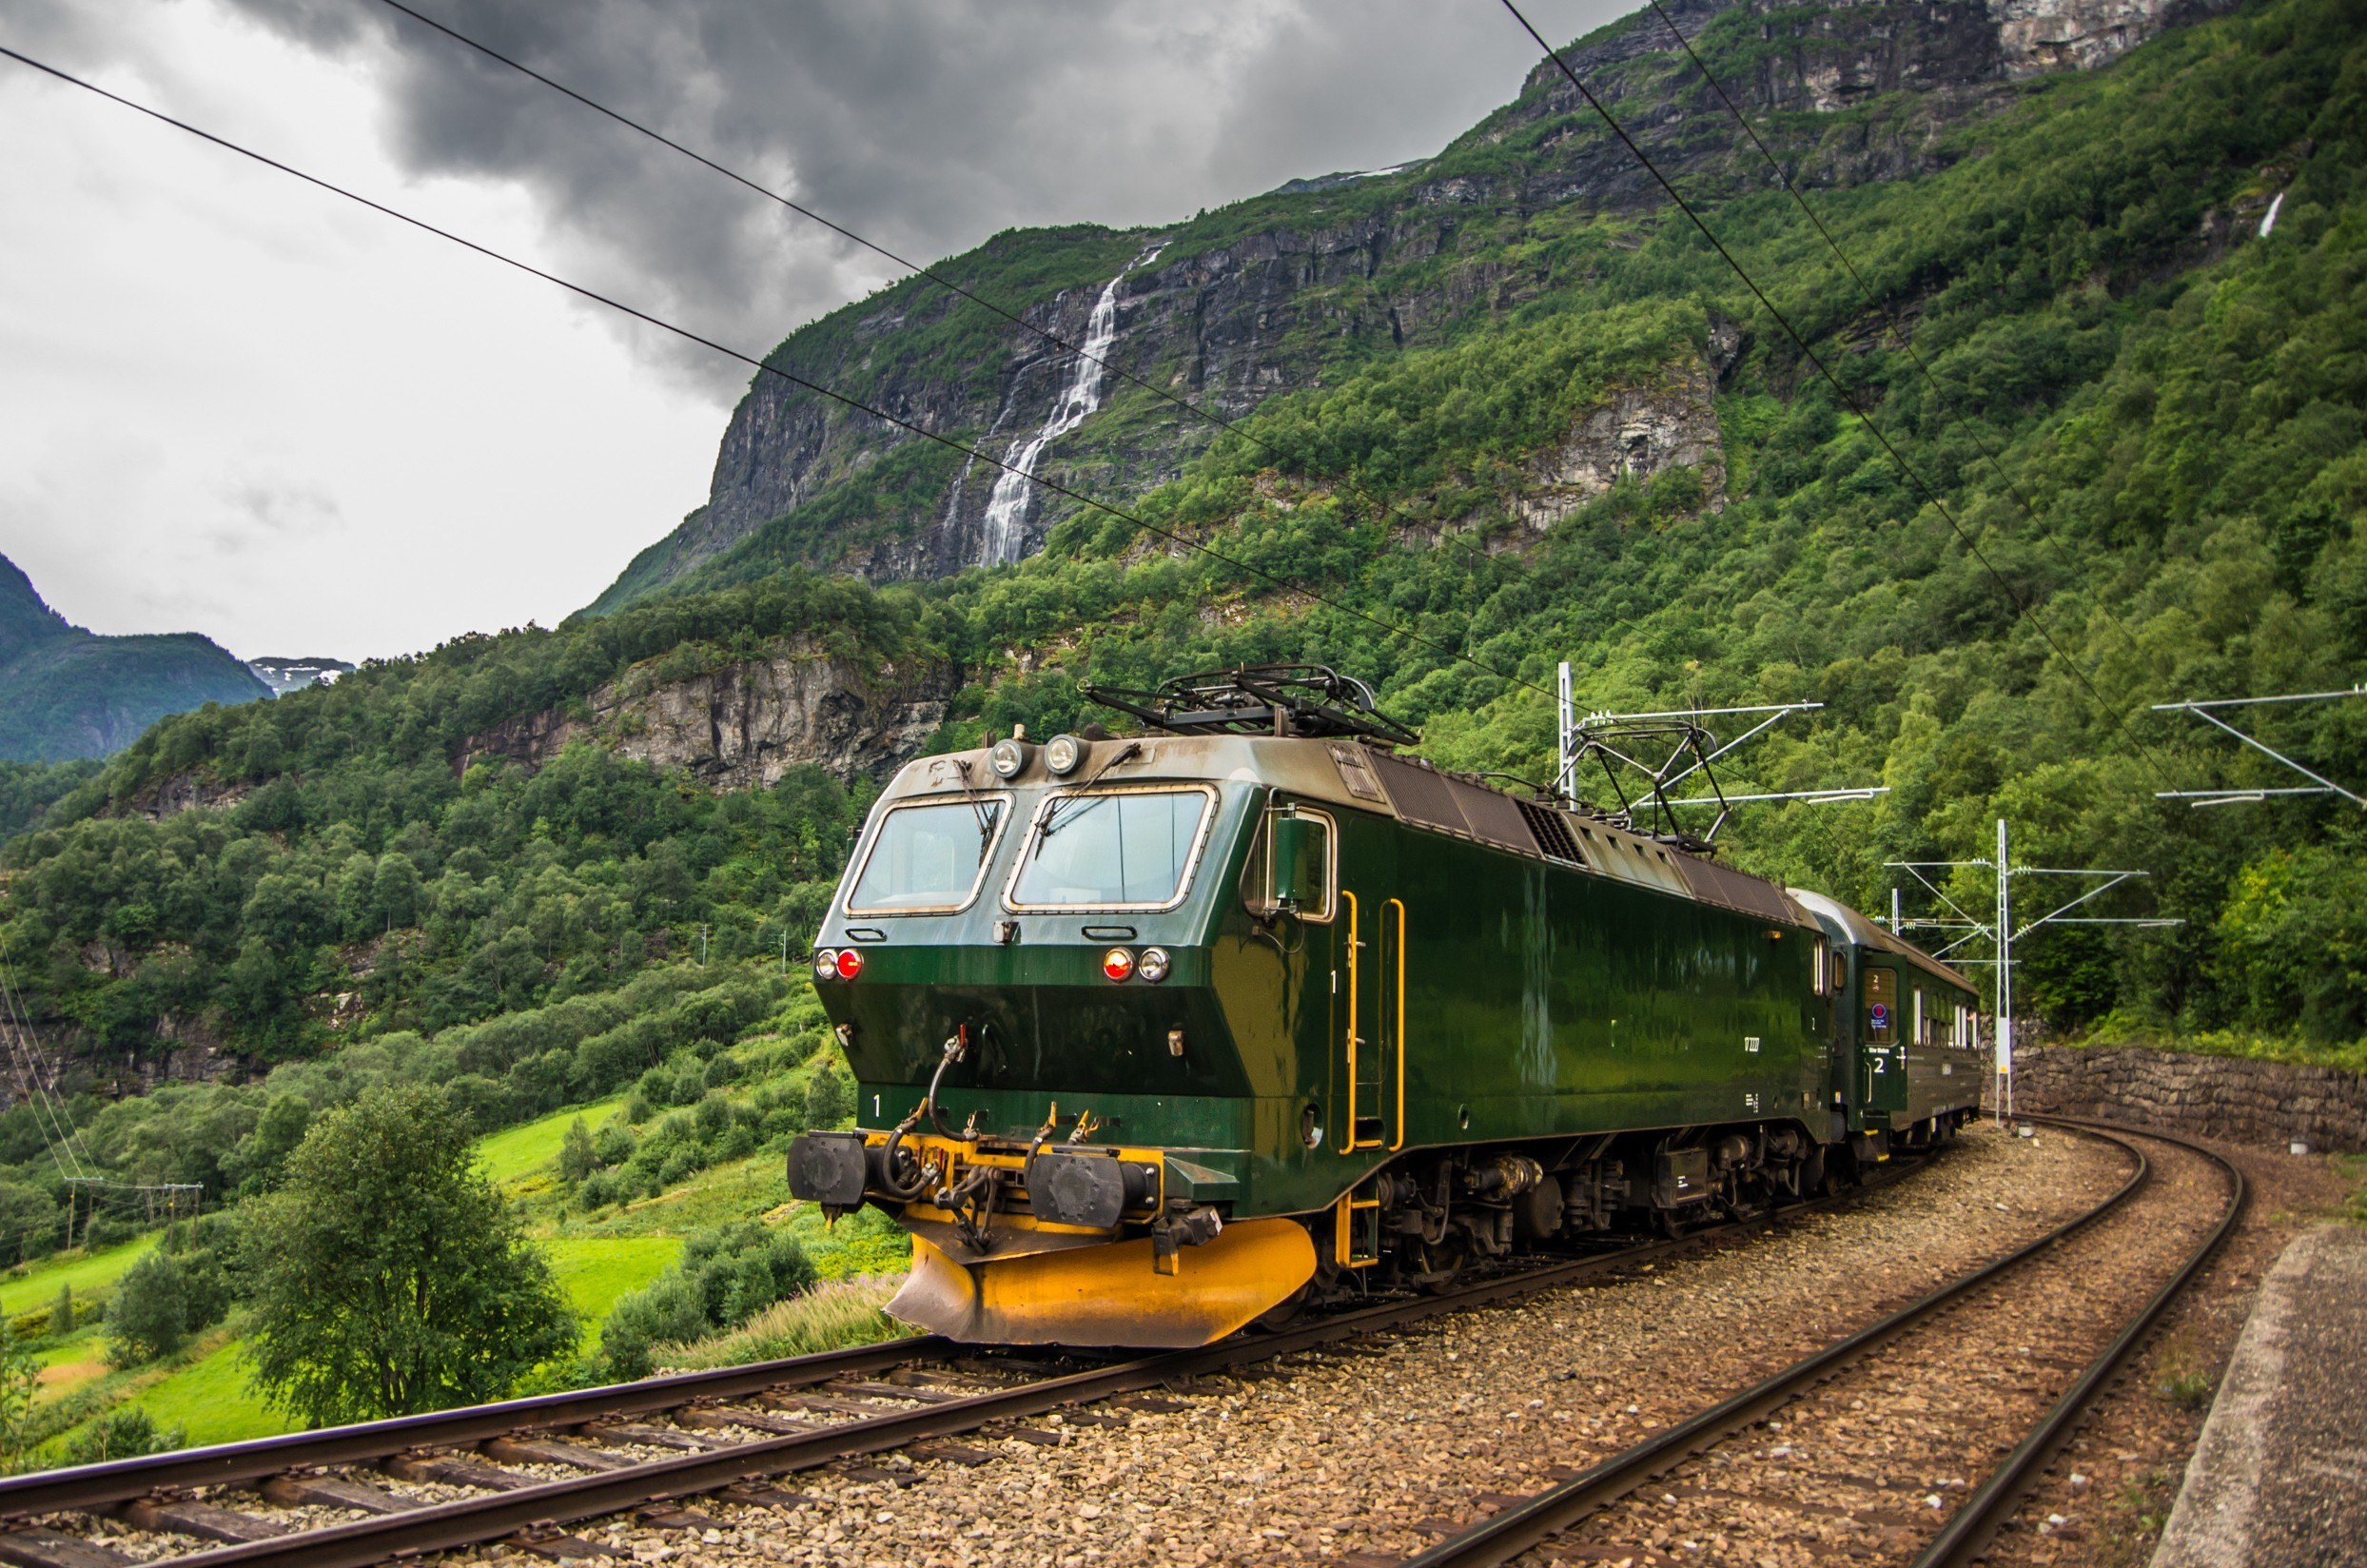 Train at famous Flam railway Flåmsbana line in Flam valley in Norway